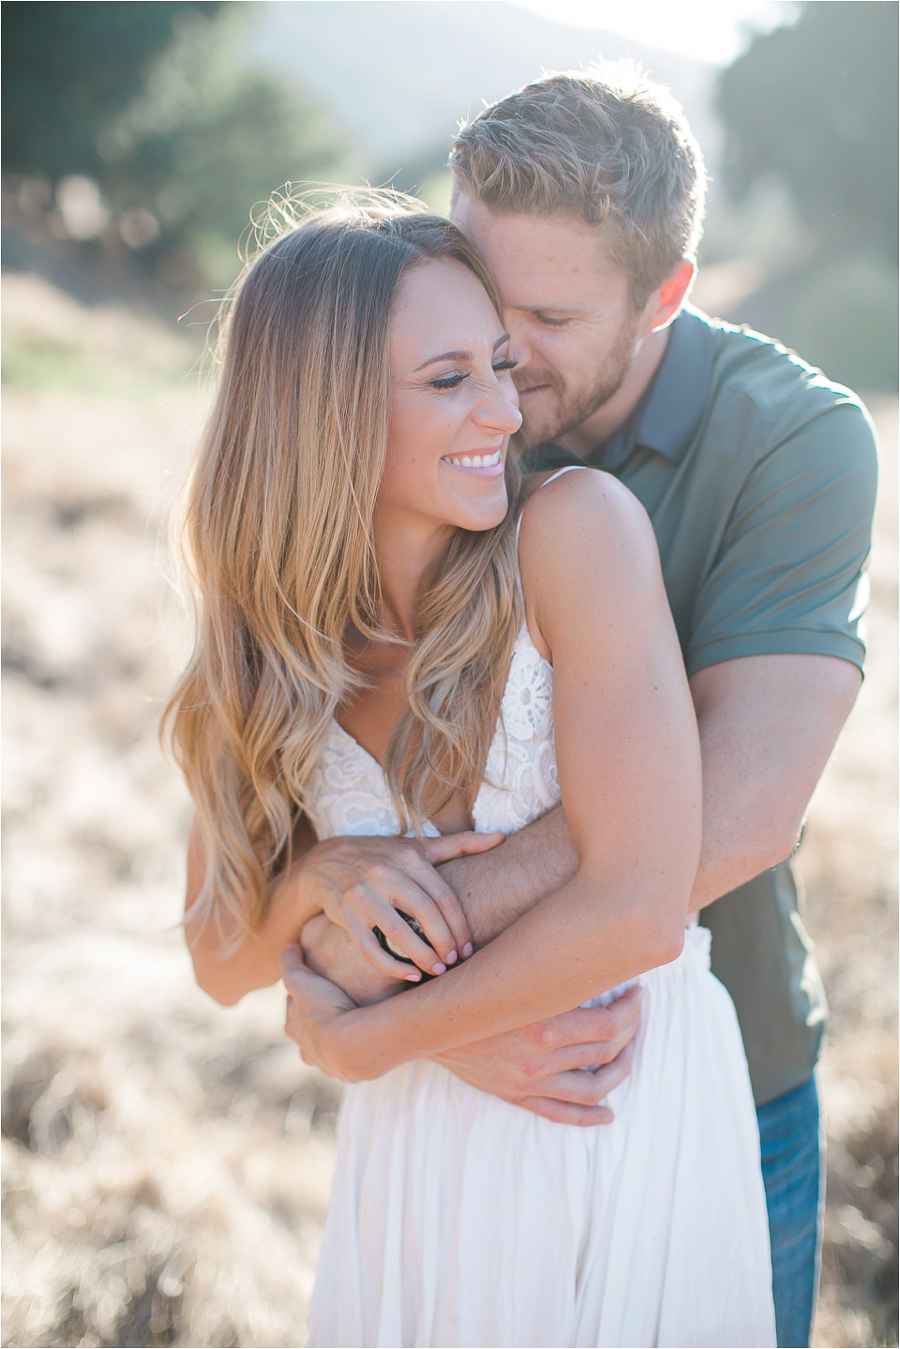 Kevan Miller and Haley Kettlekamp_Engagement Photography_Valencia-10